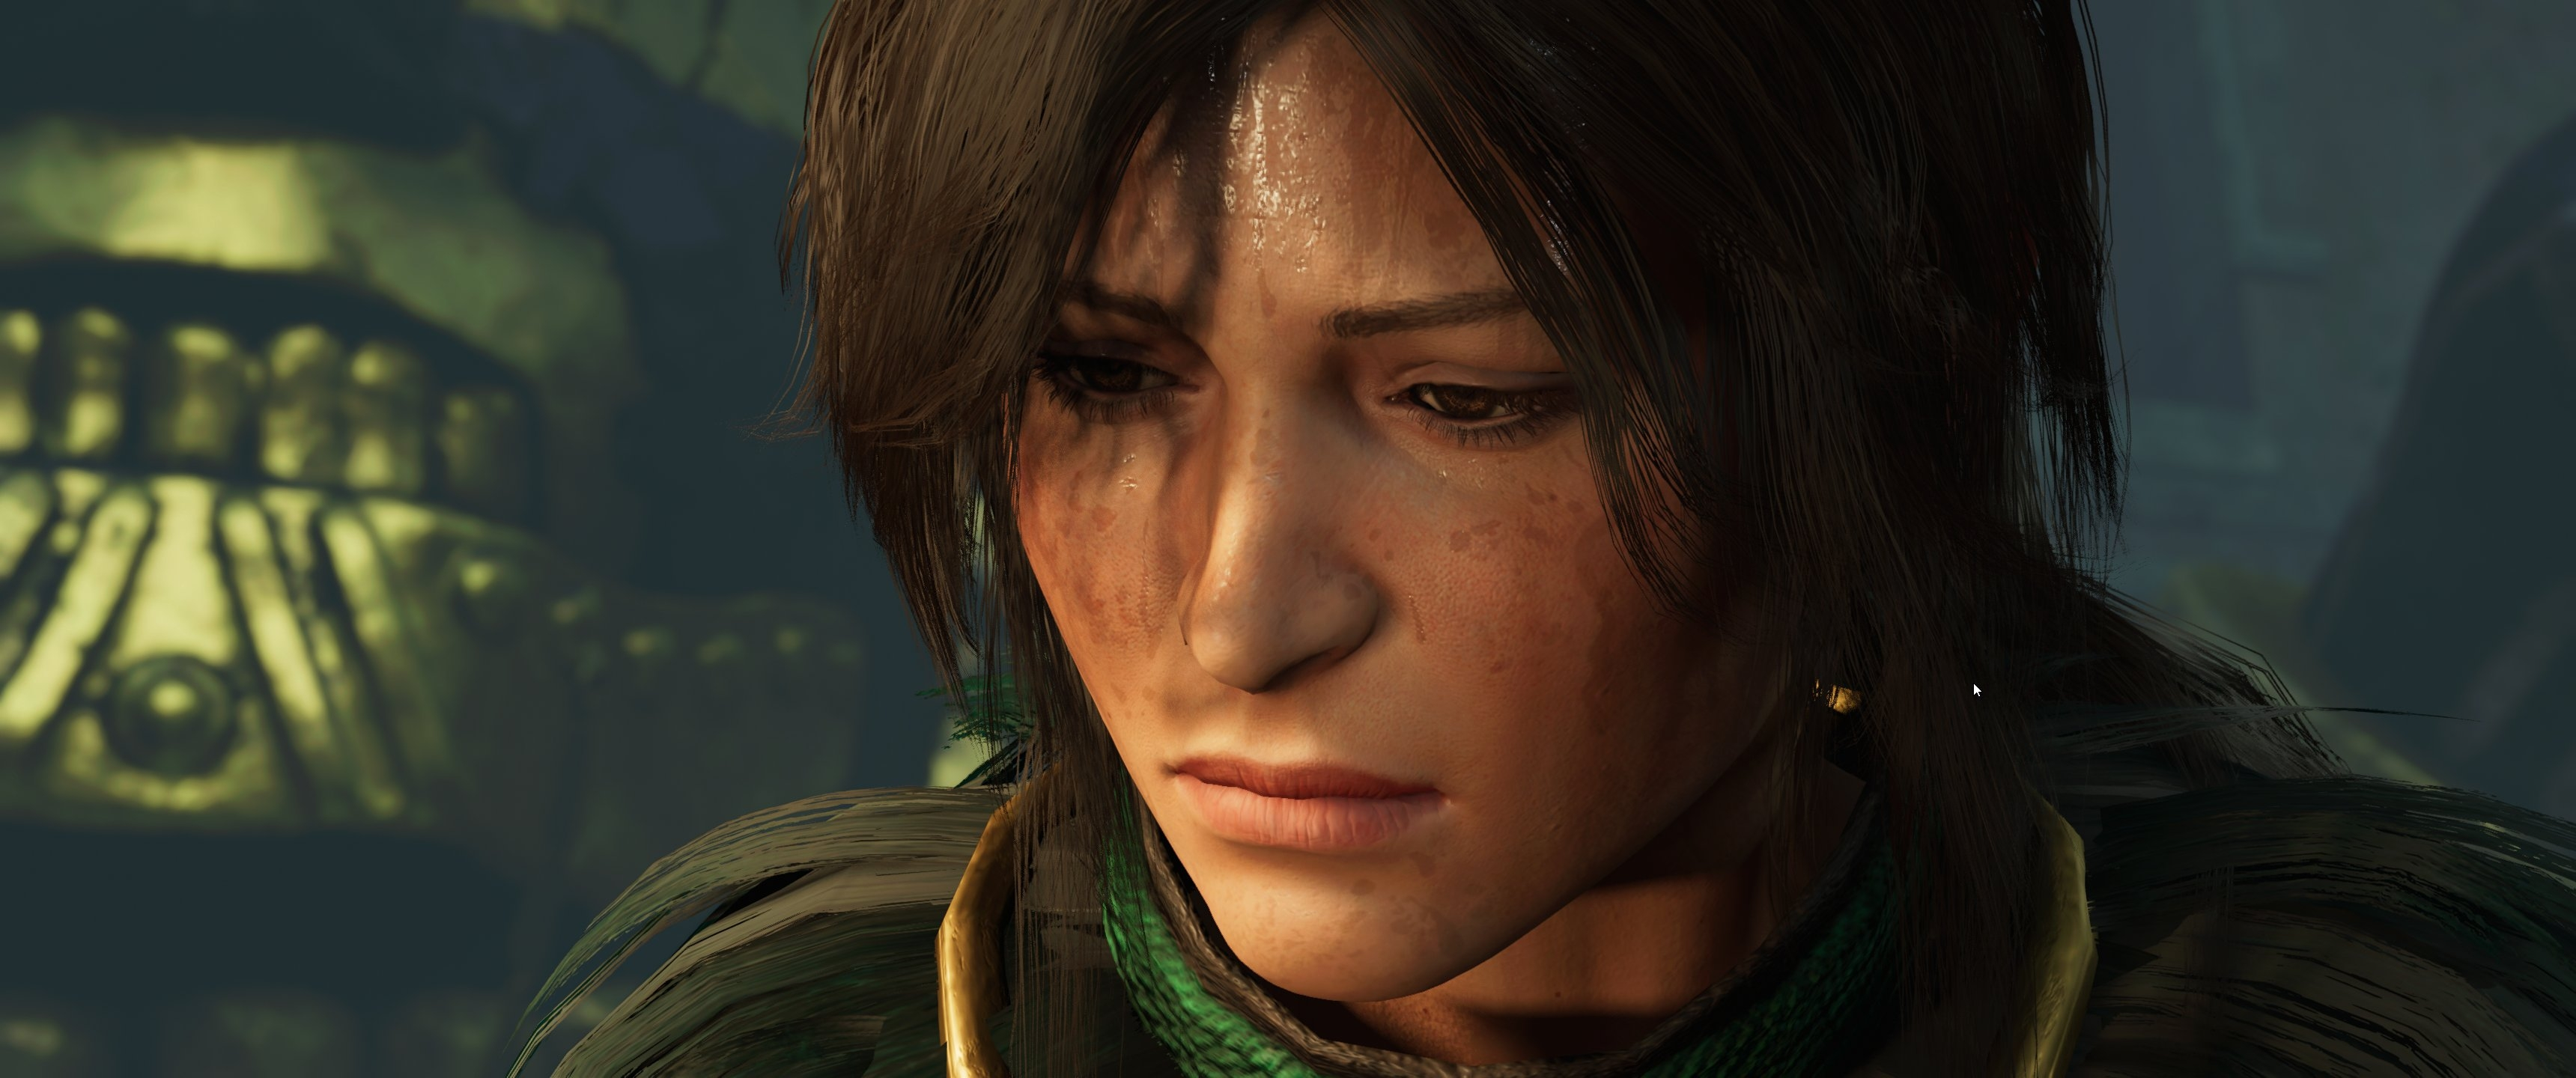 Lara thinking about what she's done.